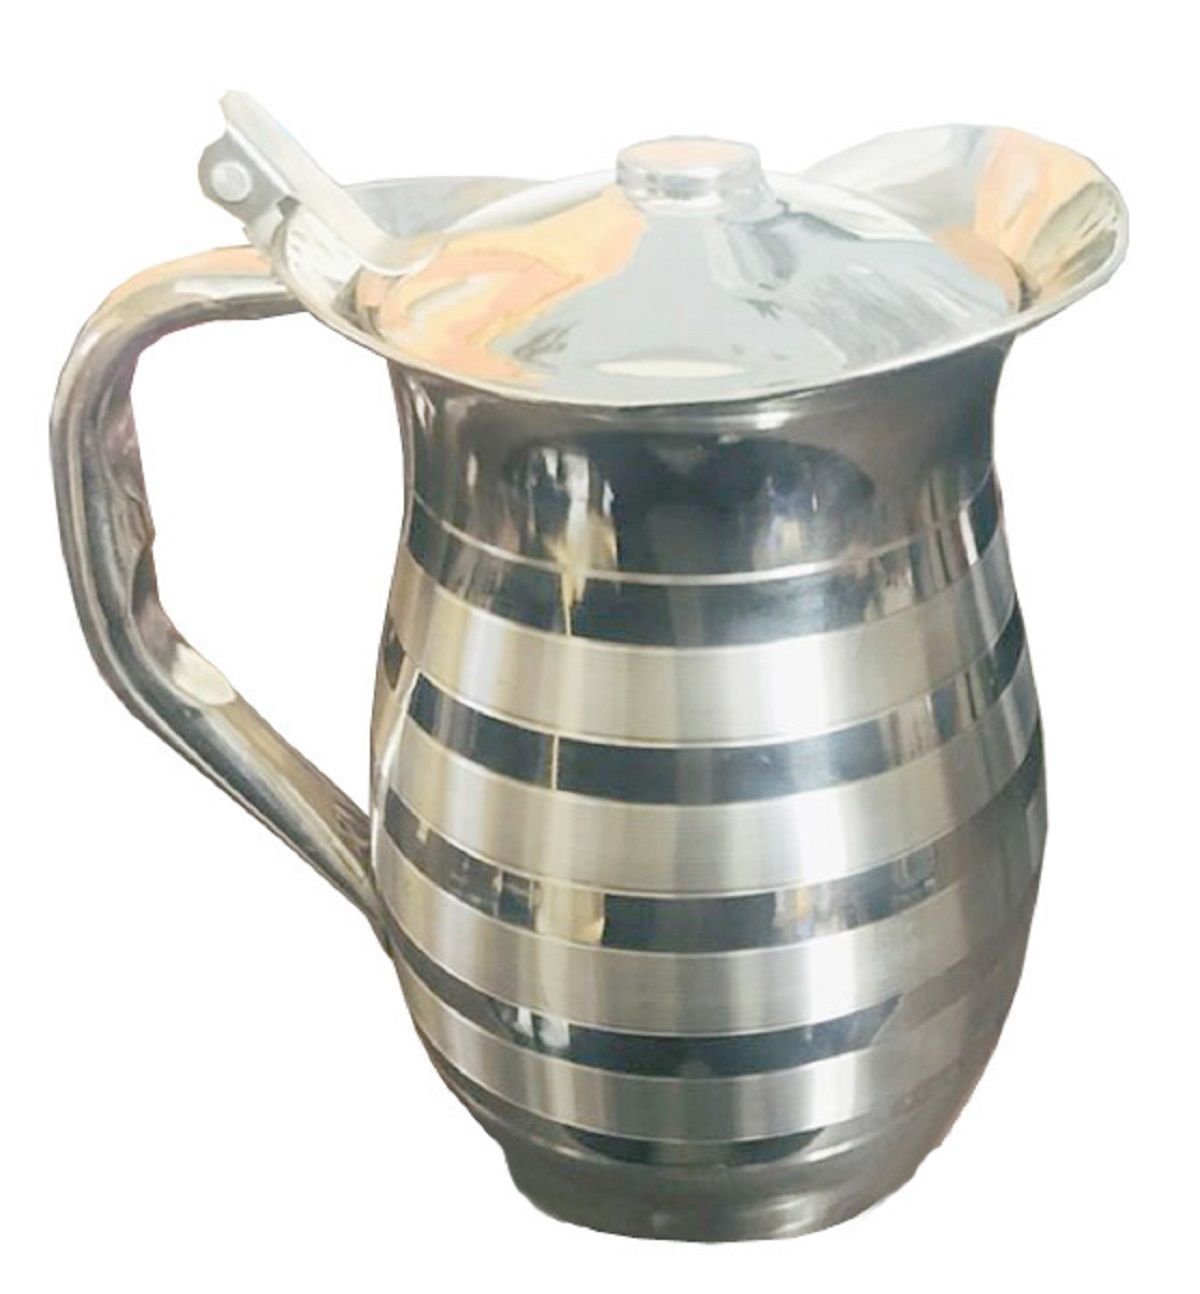 Kuber Industries Pure Stainless Steel Jug Pitcher 1500 ML For Storage & Serving Water With 6 Steel Glass (Jug27)